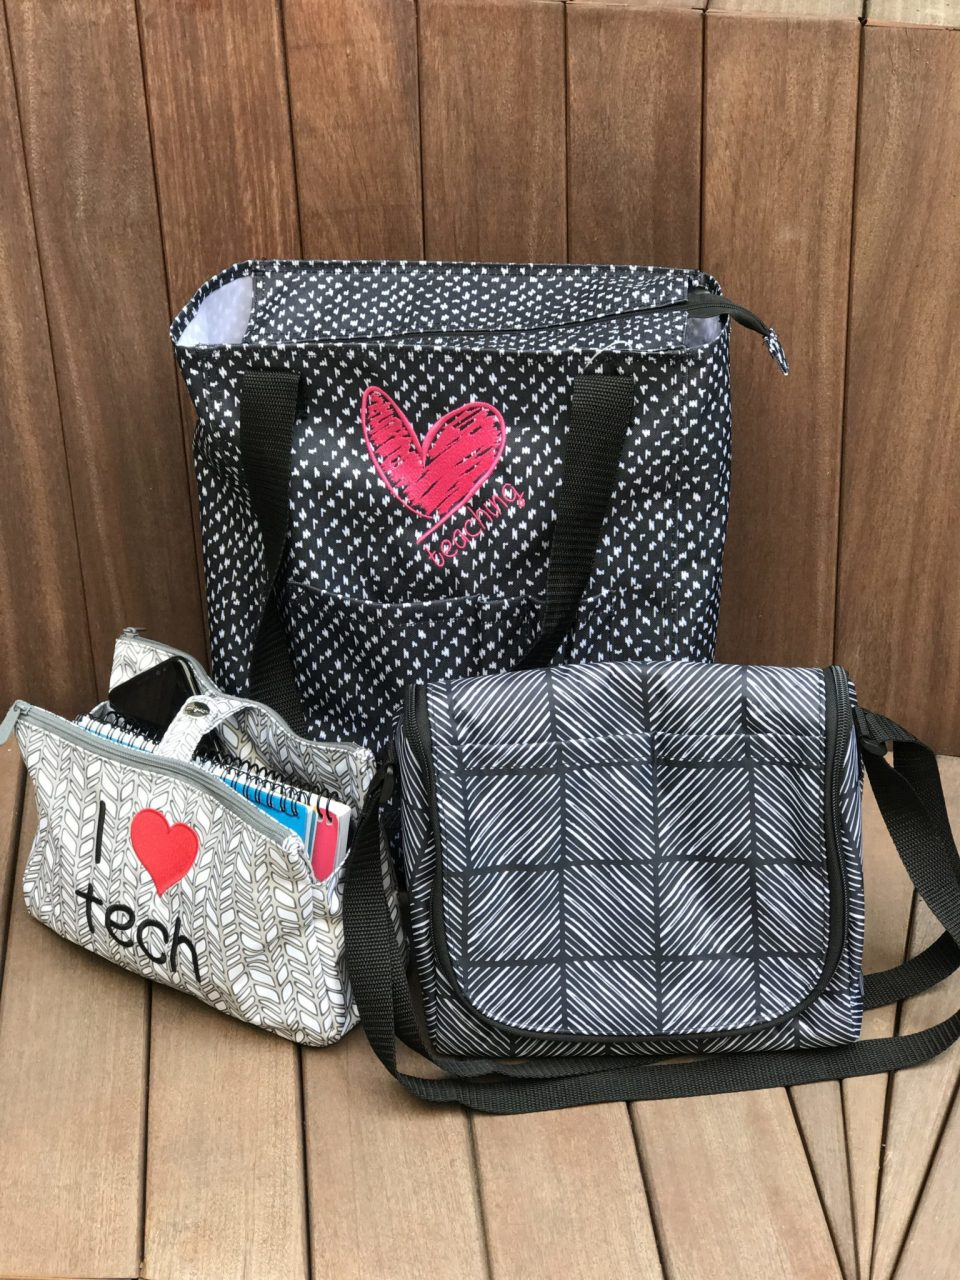 It's back to school time! This year we're ready with Thirty-One. Check out the great backpacks, totes, and lunch boxes we chose -- for kids and teachers too!